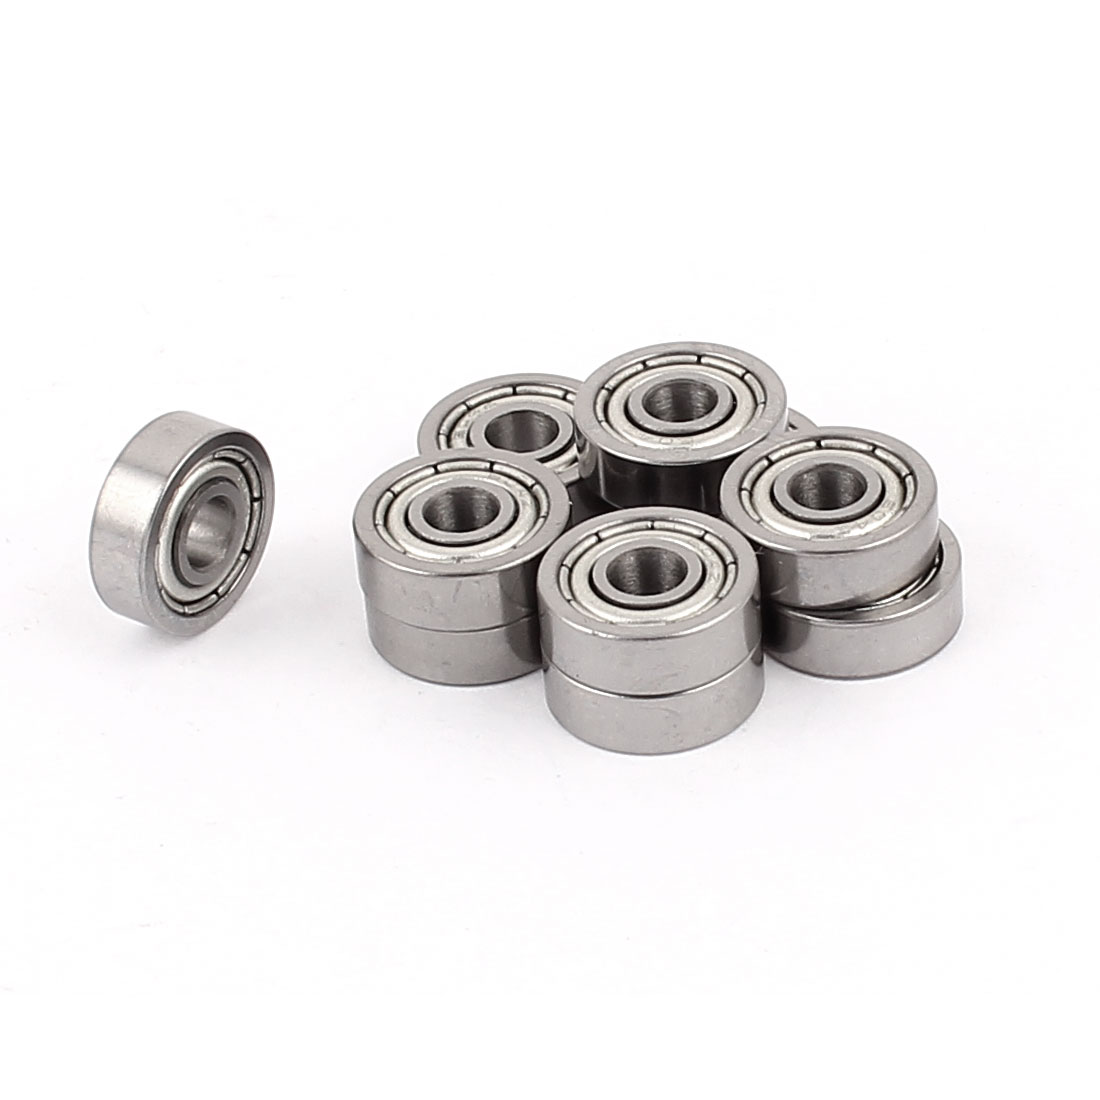 12mm x 4mm x 4mm Metal Sealed Double Shielded Deep Groove Ball Bearing 10Pcs by Unique Bargains